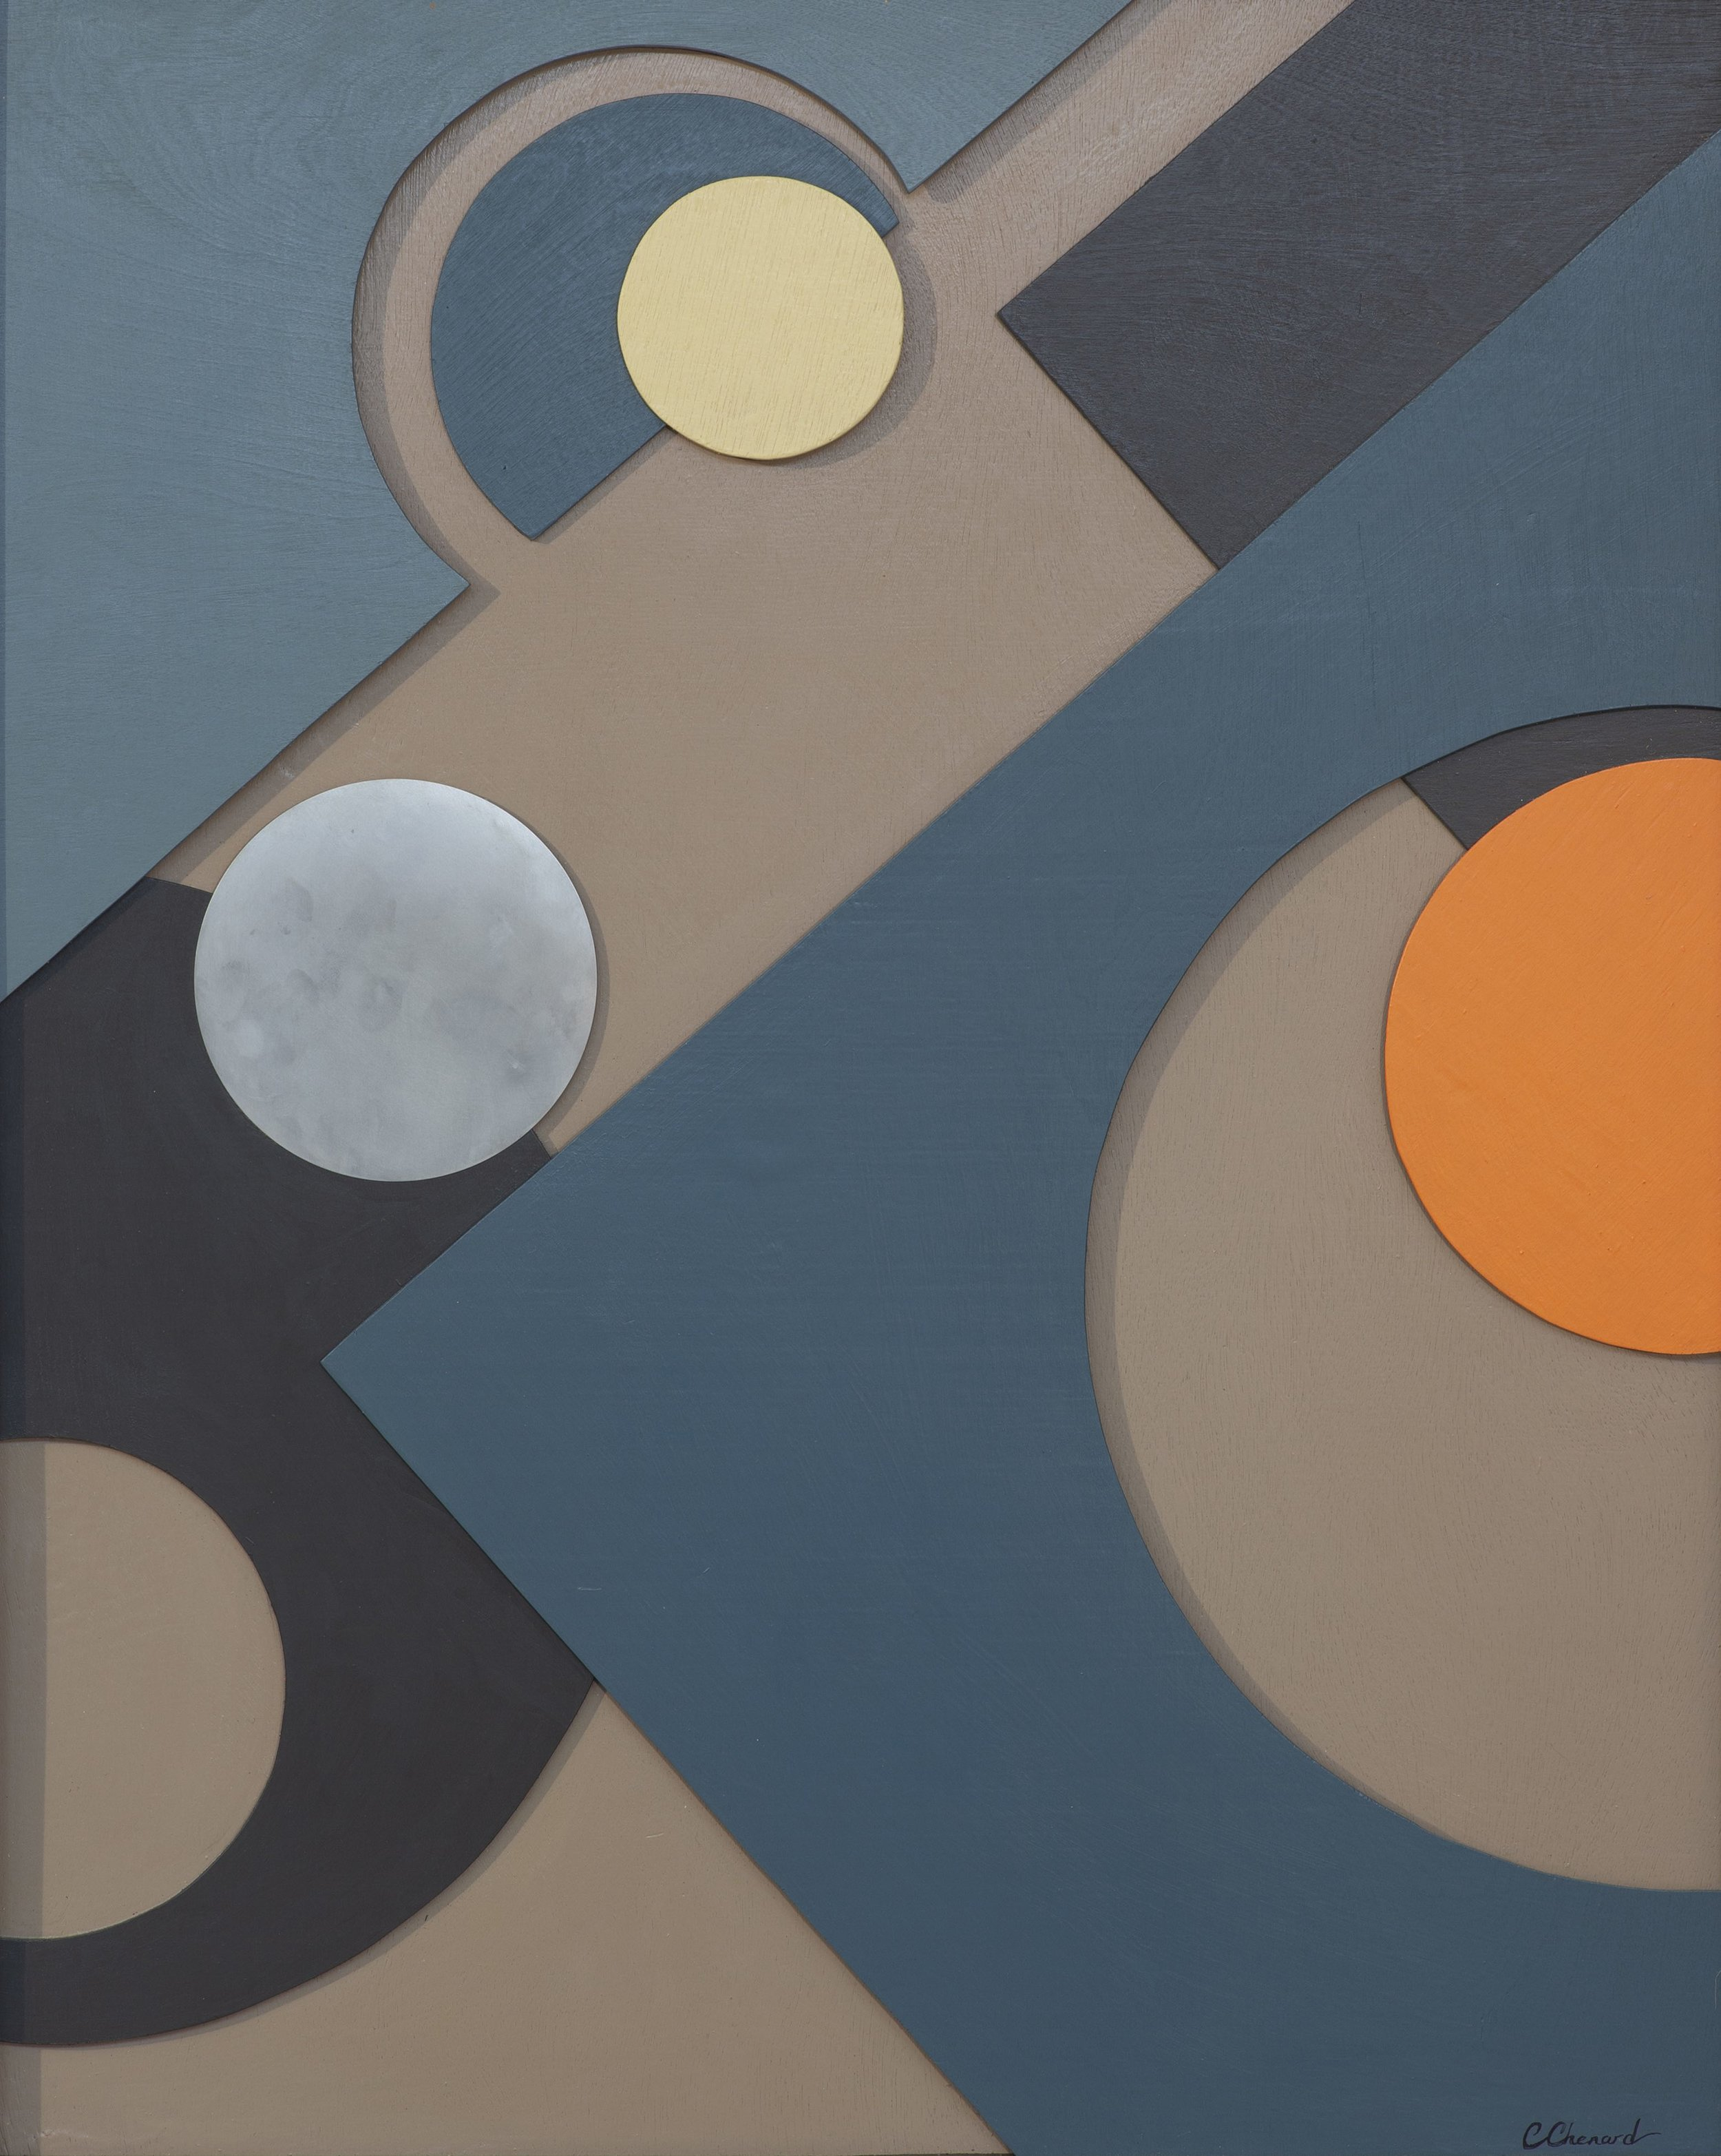 """CIRCLES & SHADOWS"",  Acrylic on Layers of Wood,  24x36 inches $800."